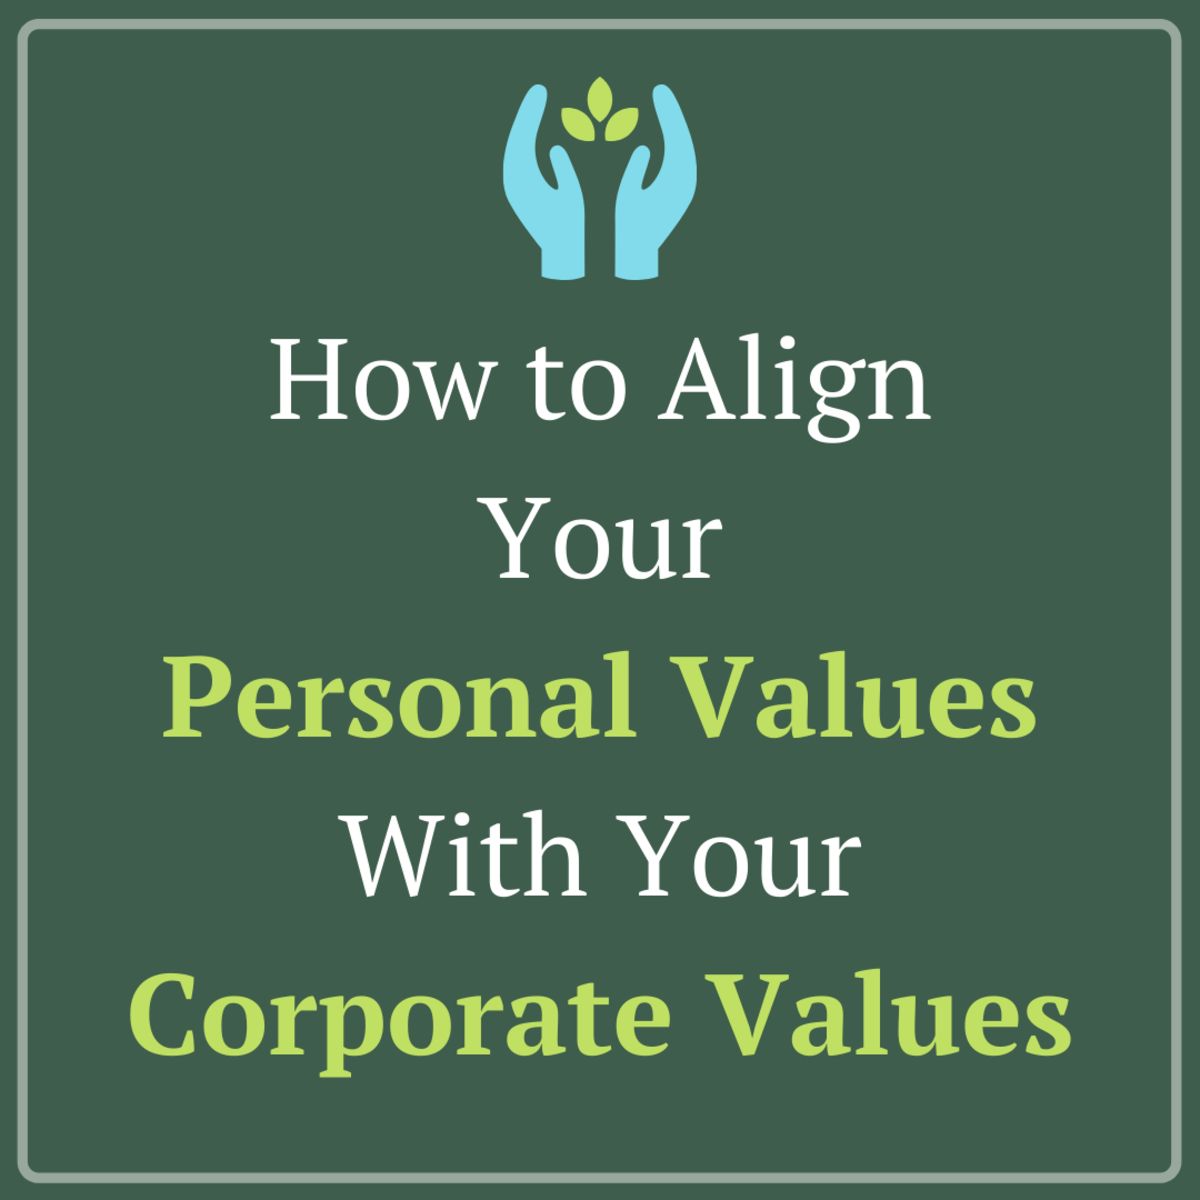 Explore how to analyze your own thinking and values in order to align your personal and corporate values.